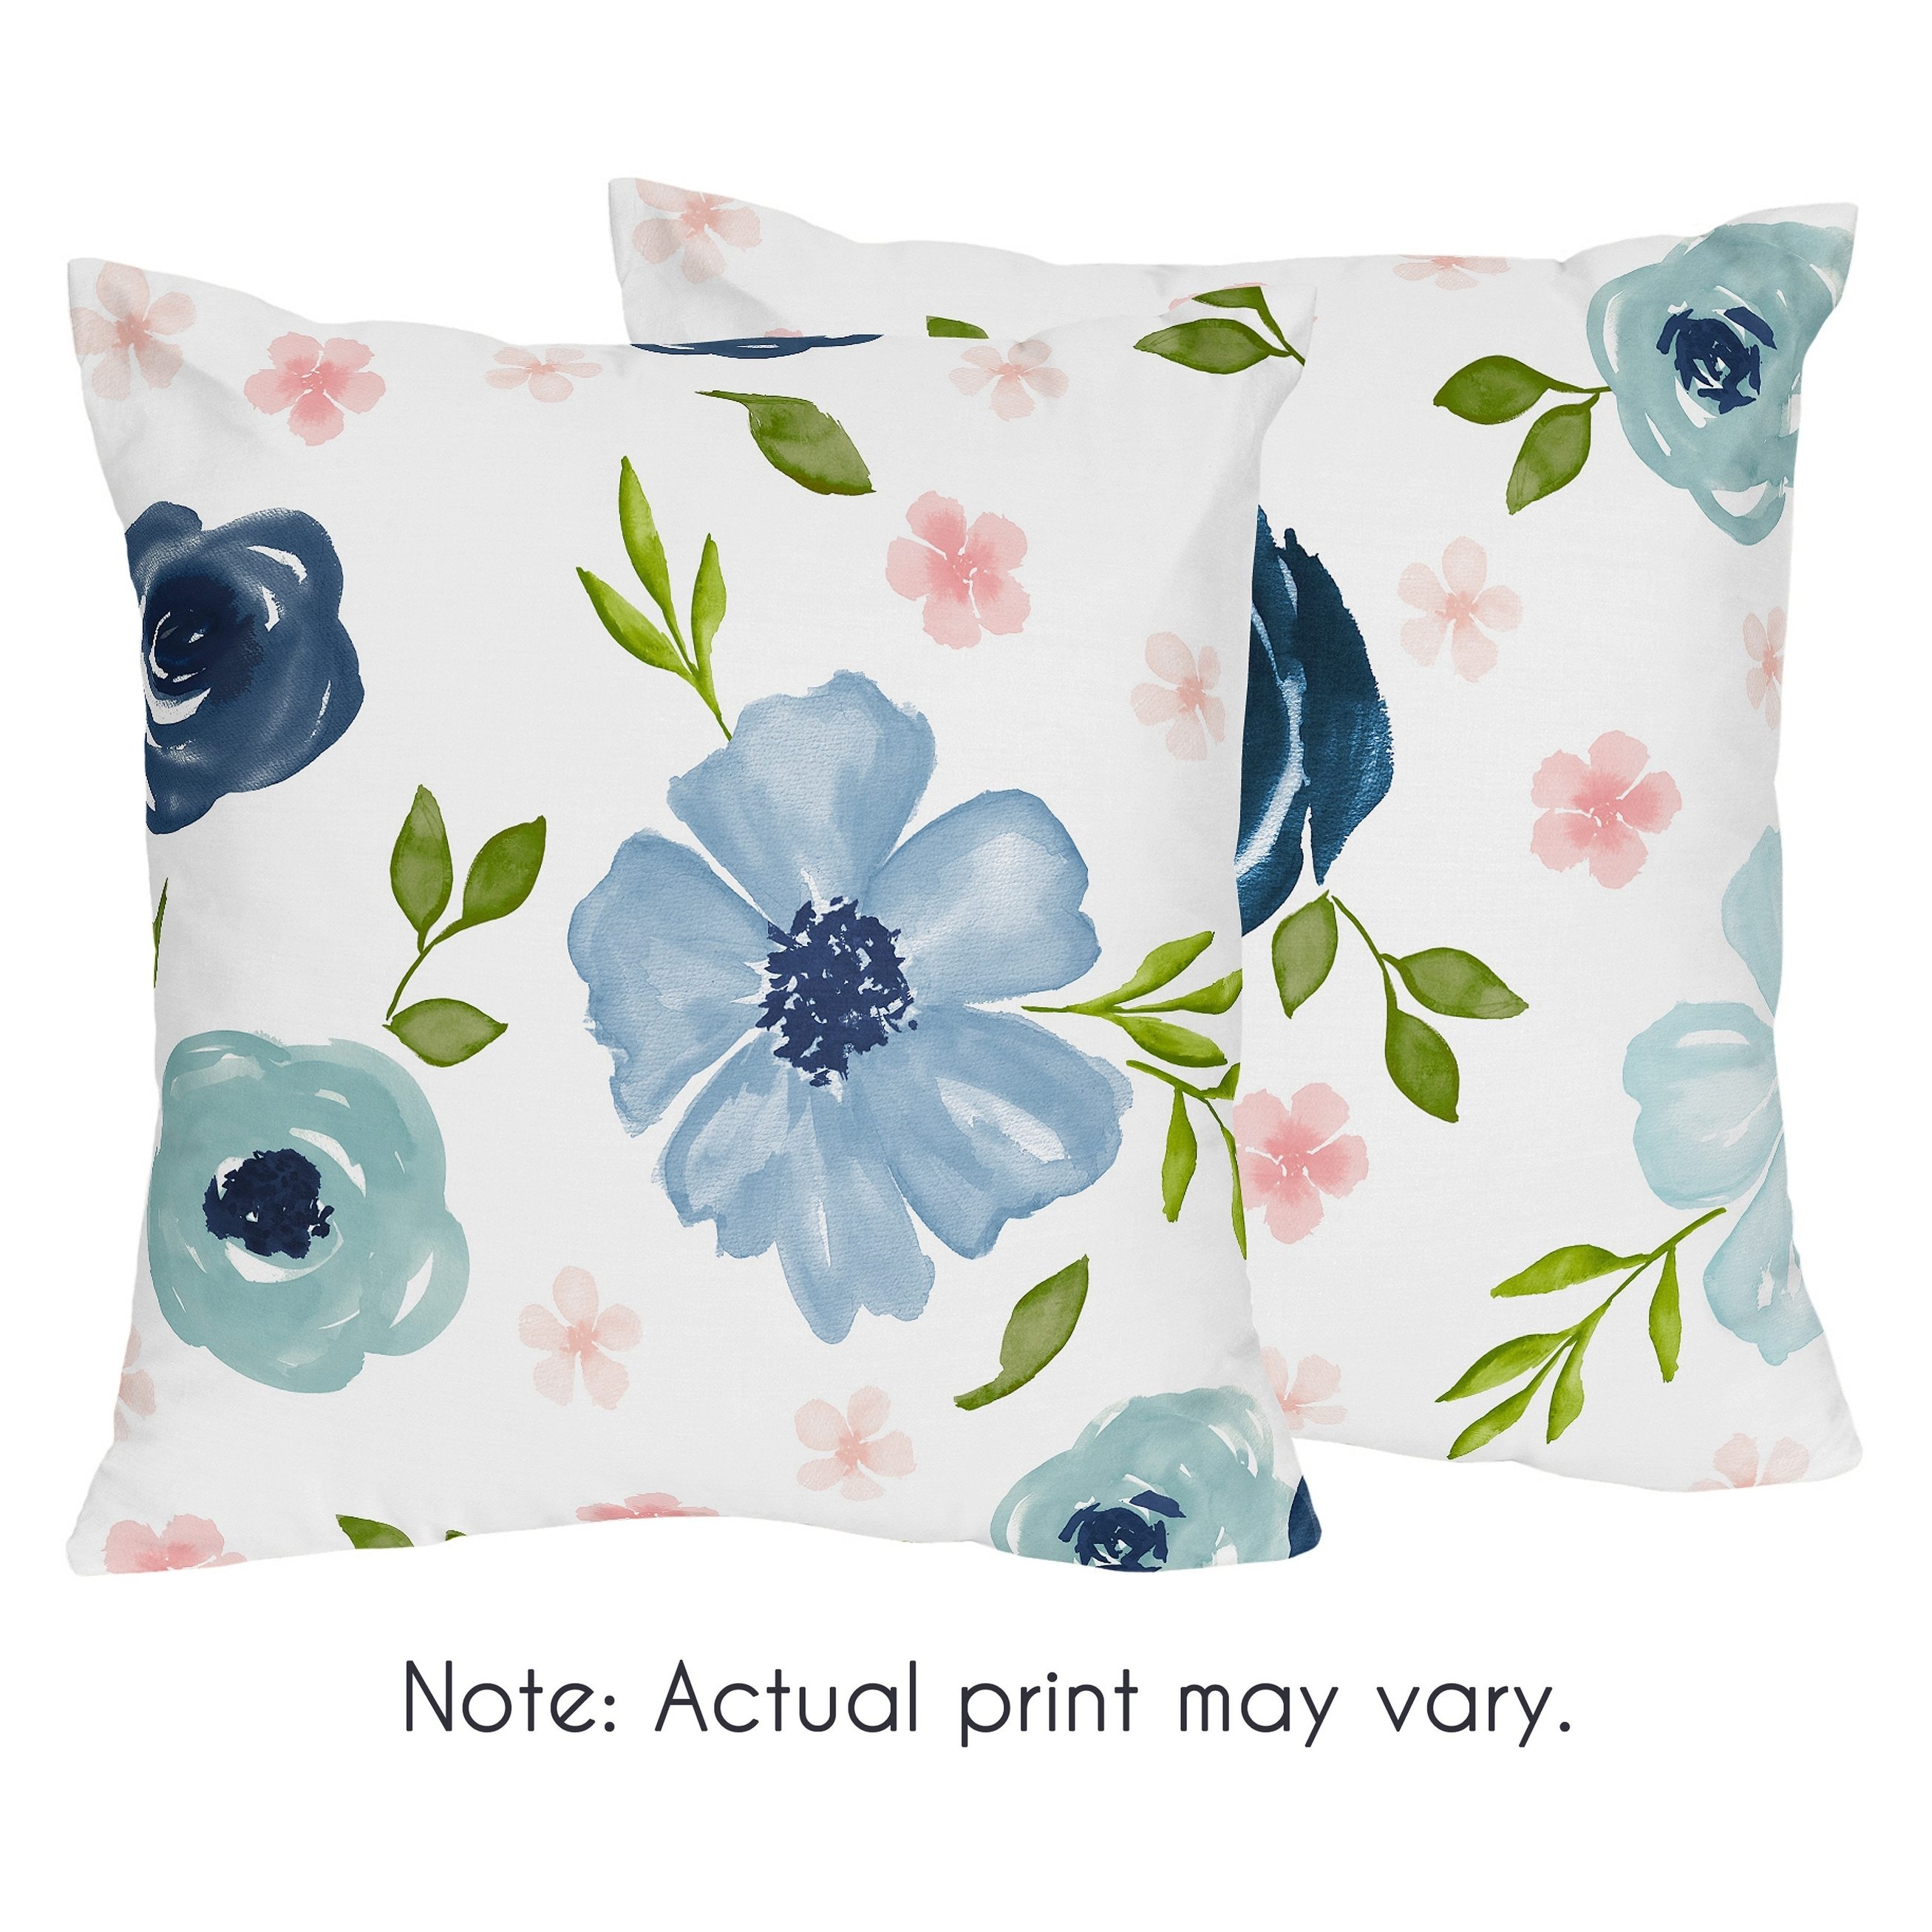 Navy Blue Pink Watercolor Floral 18in Decorative Accent Throw Pillows Set Of 2 Blush Green Shabby Chic Overstock 30757354